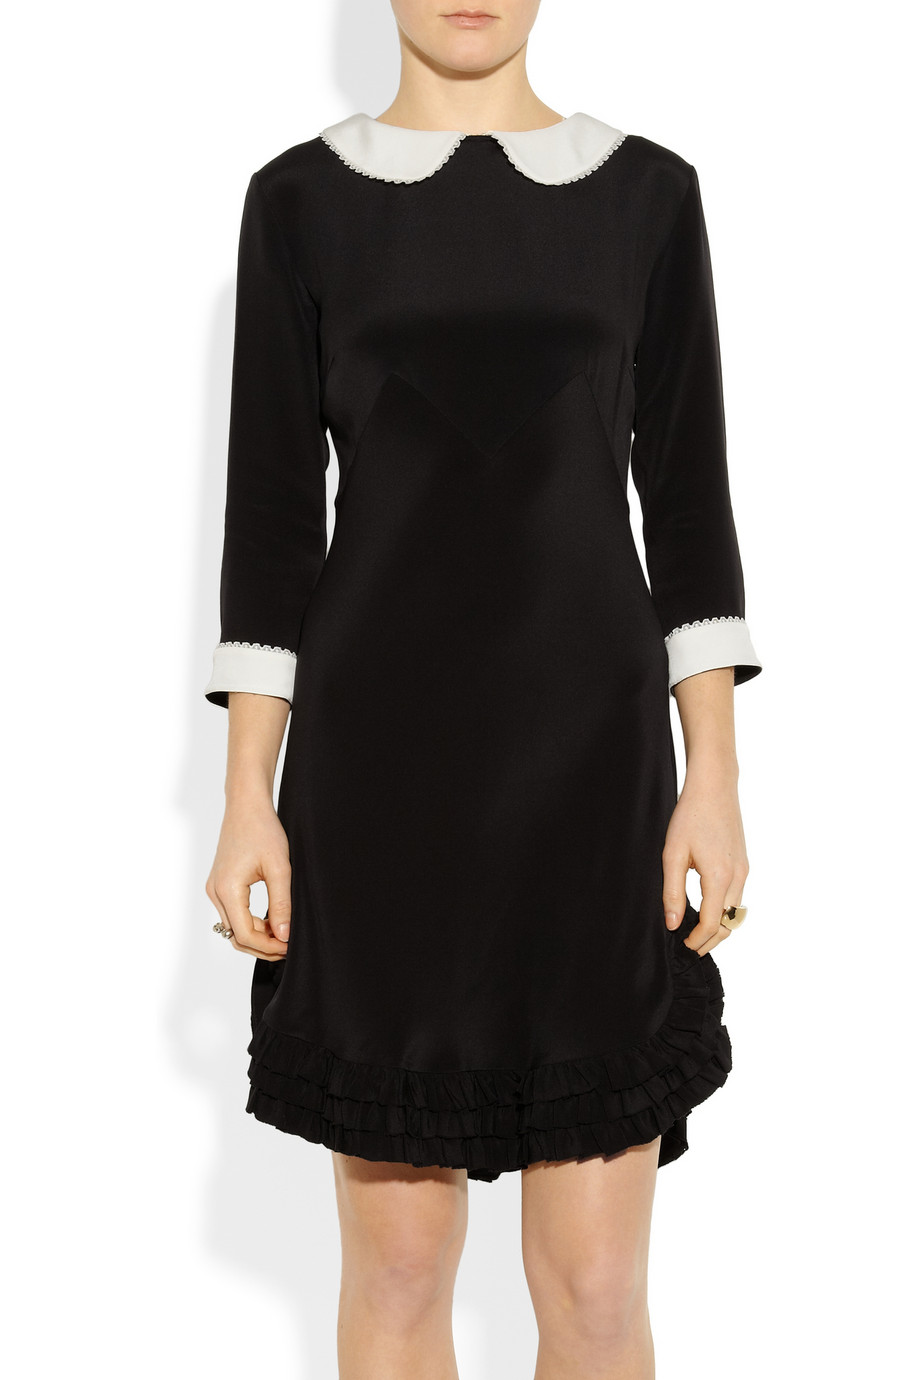 Black Collared Tie Back Tropical Print Bodycon Dress From: Rochas Peter Pan Collar Dress In Black